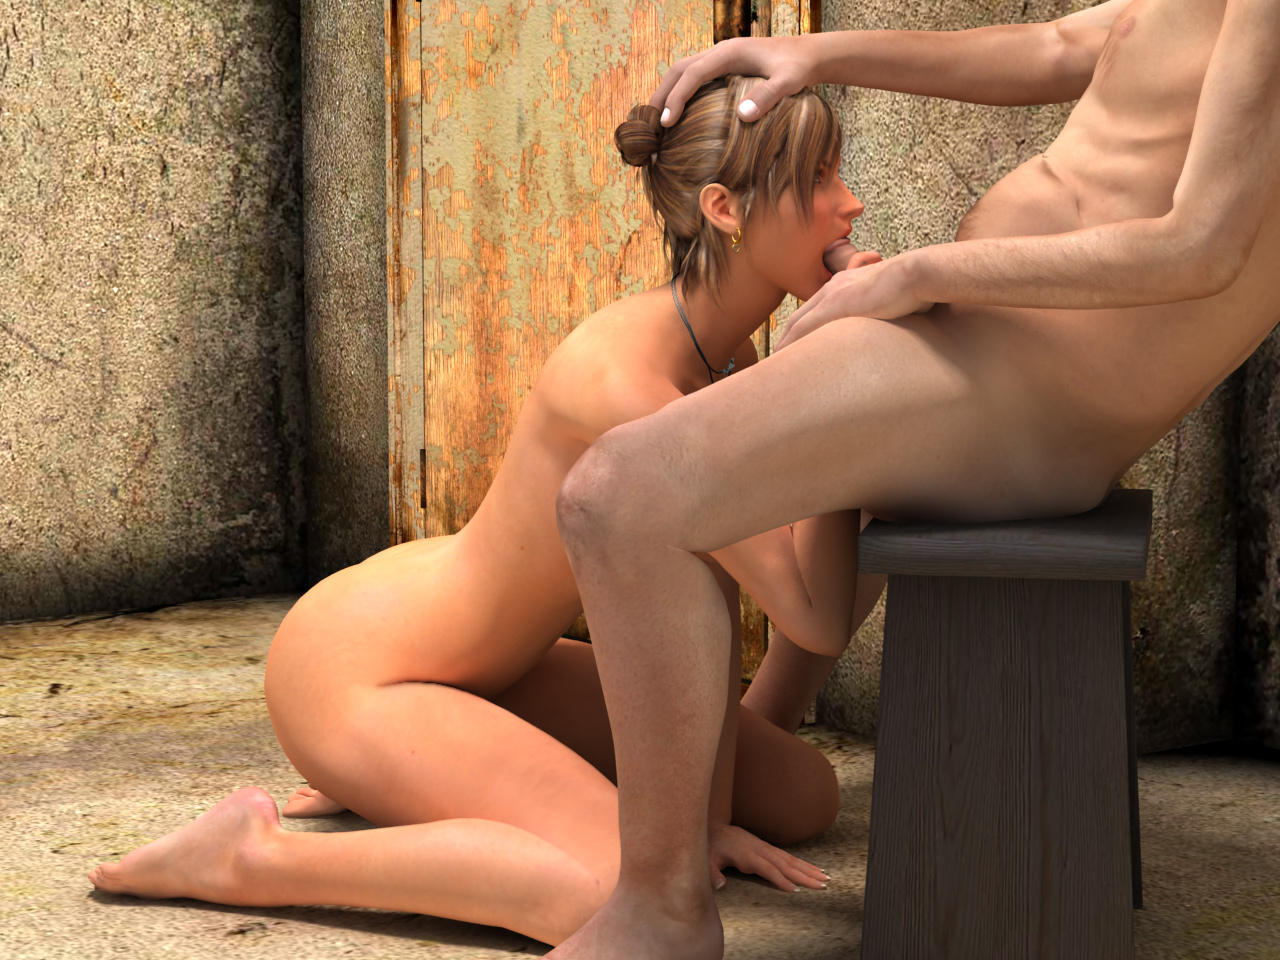 3d hd sex photos smut image